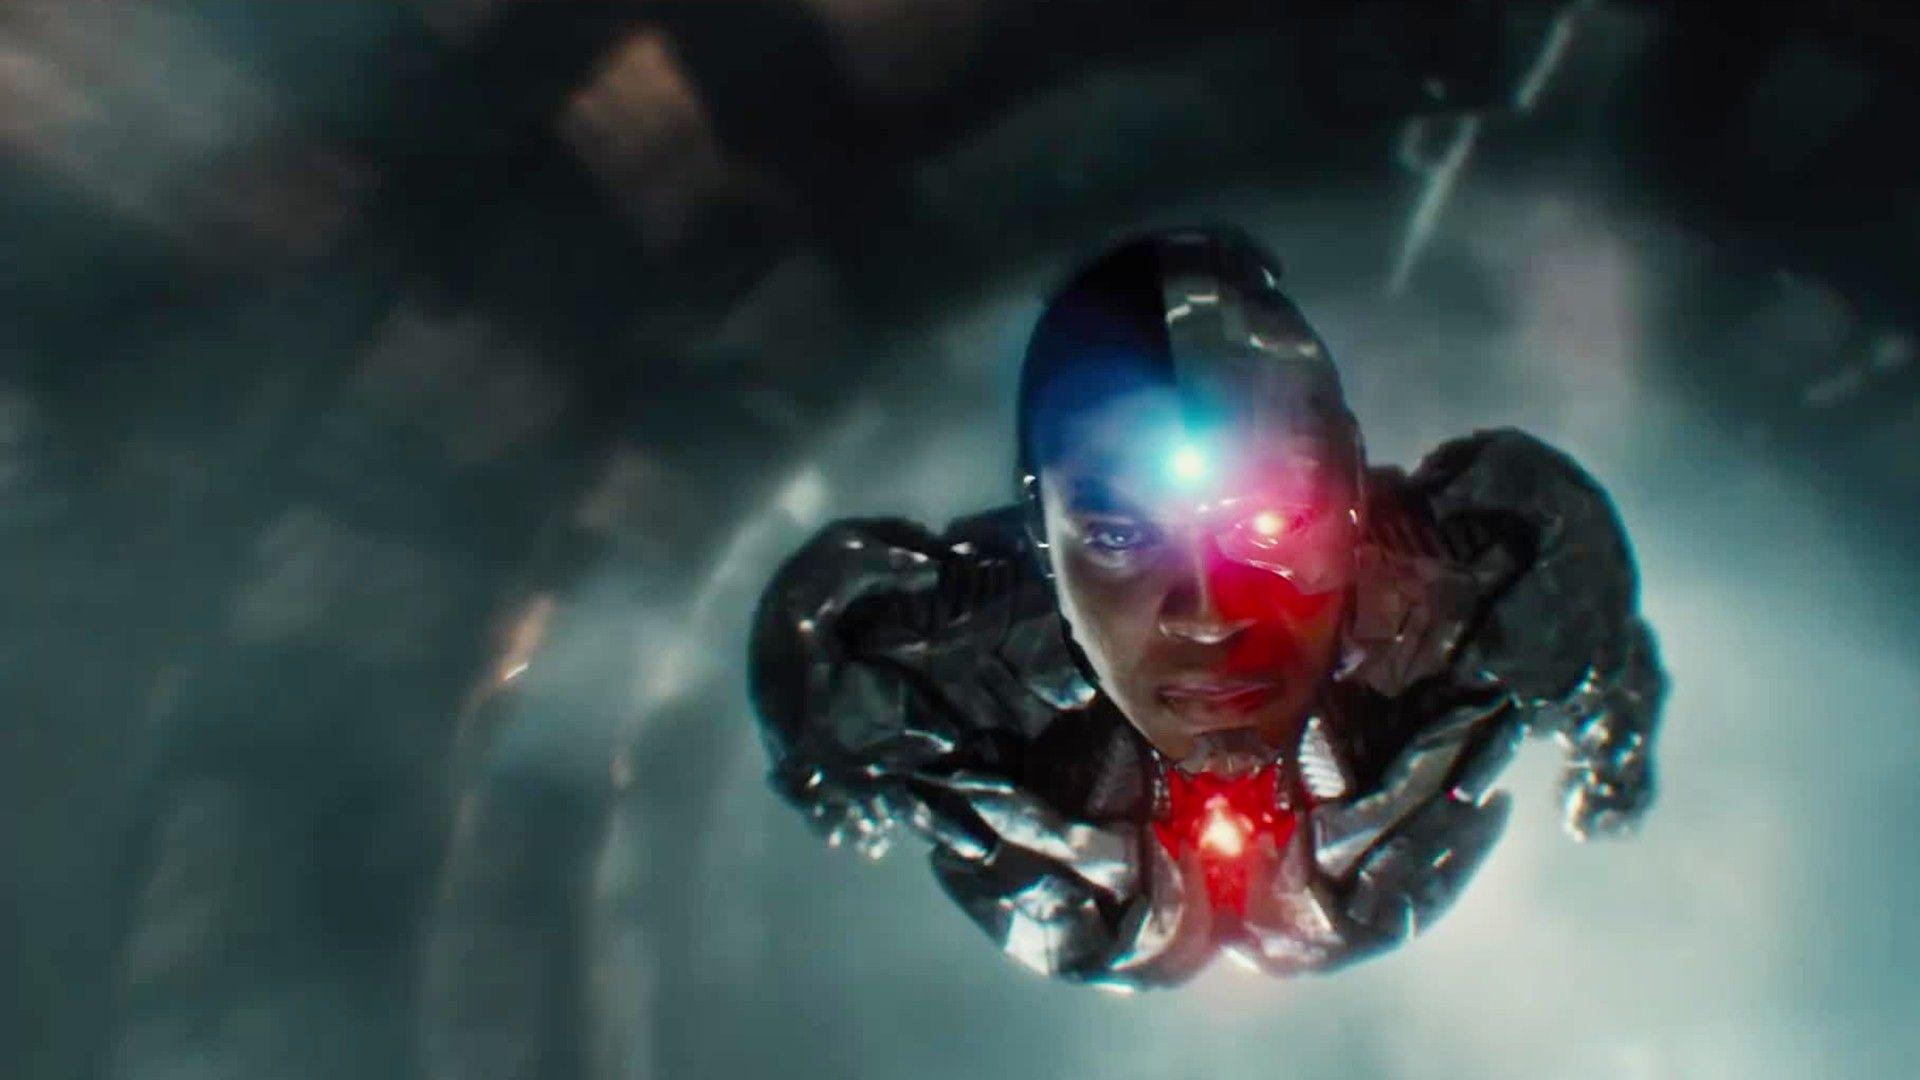 Justice League Cyborg Wallpapers - Wallpaper Cave